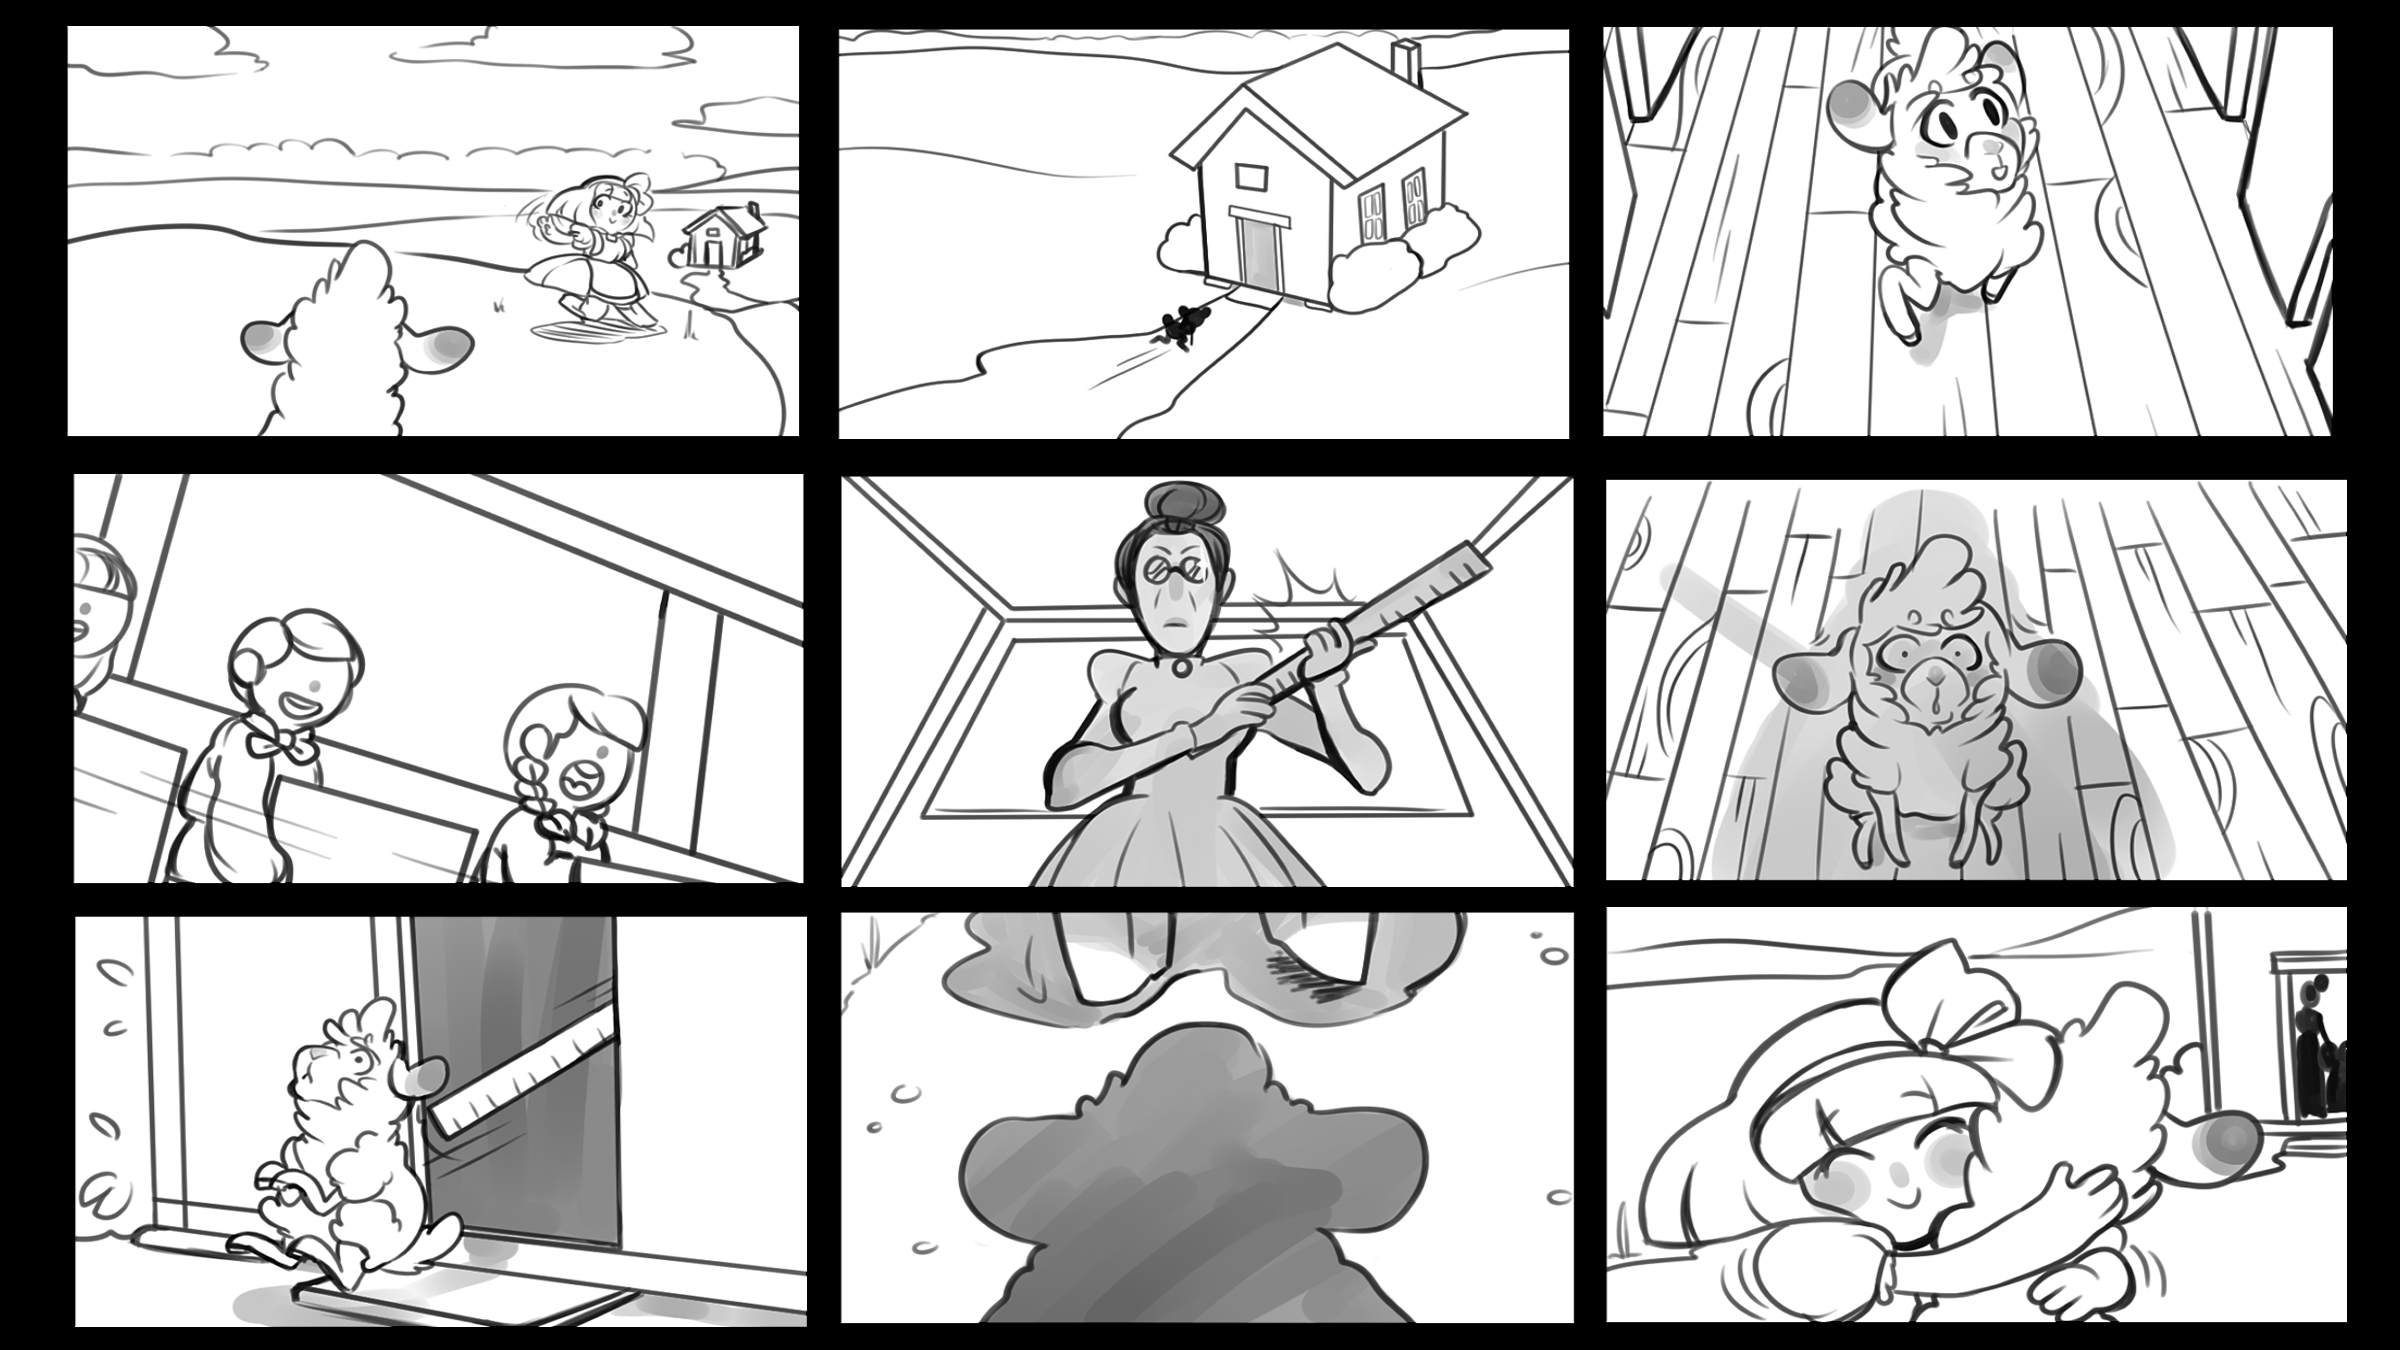 Storyboard: Mary had a little lamb